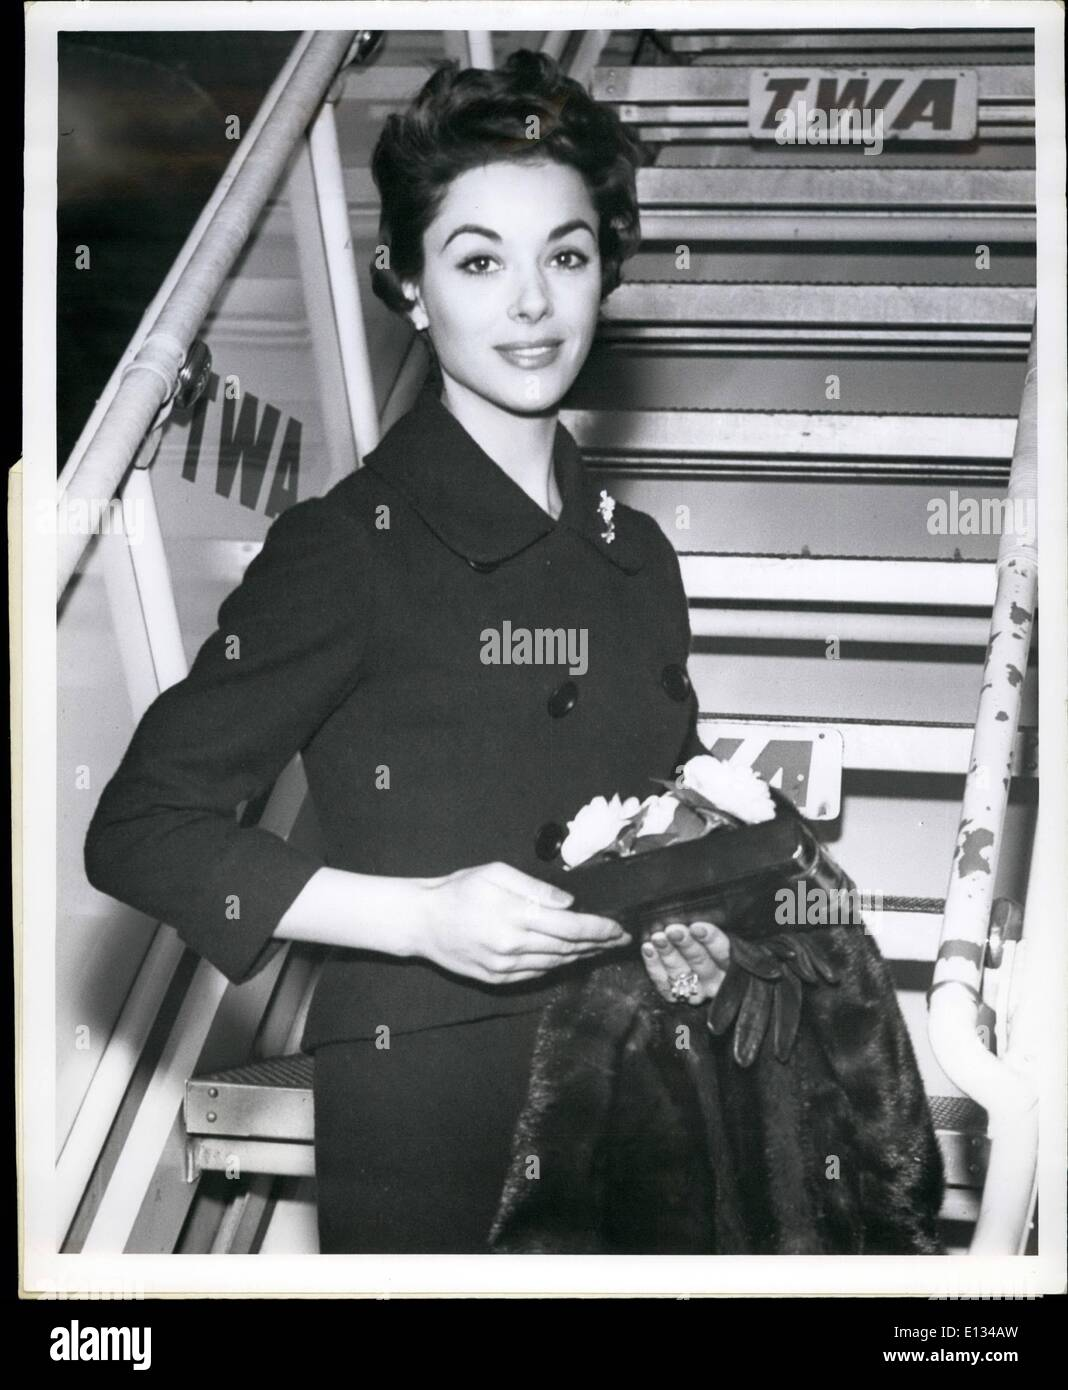 Dana Wynter (1931-2011 (born in Berlin, Germany) Dana Wynter (1931-2011 (born in Berlin, Germany) new foto